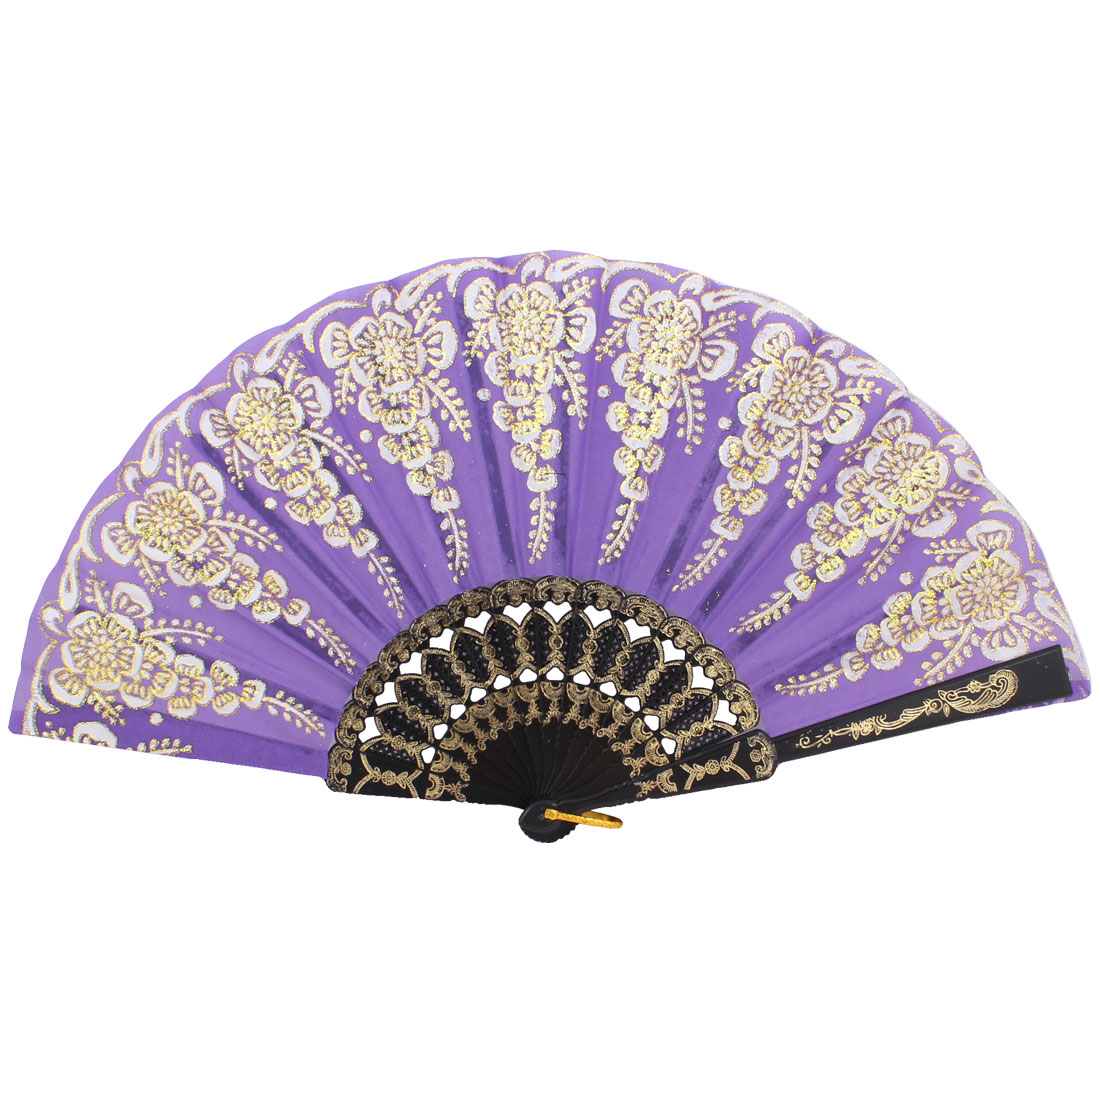 Nylon Hollow Out Handle Plastic Purple Folding Metal Ring Hand Fan